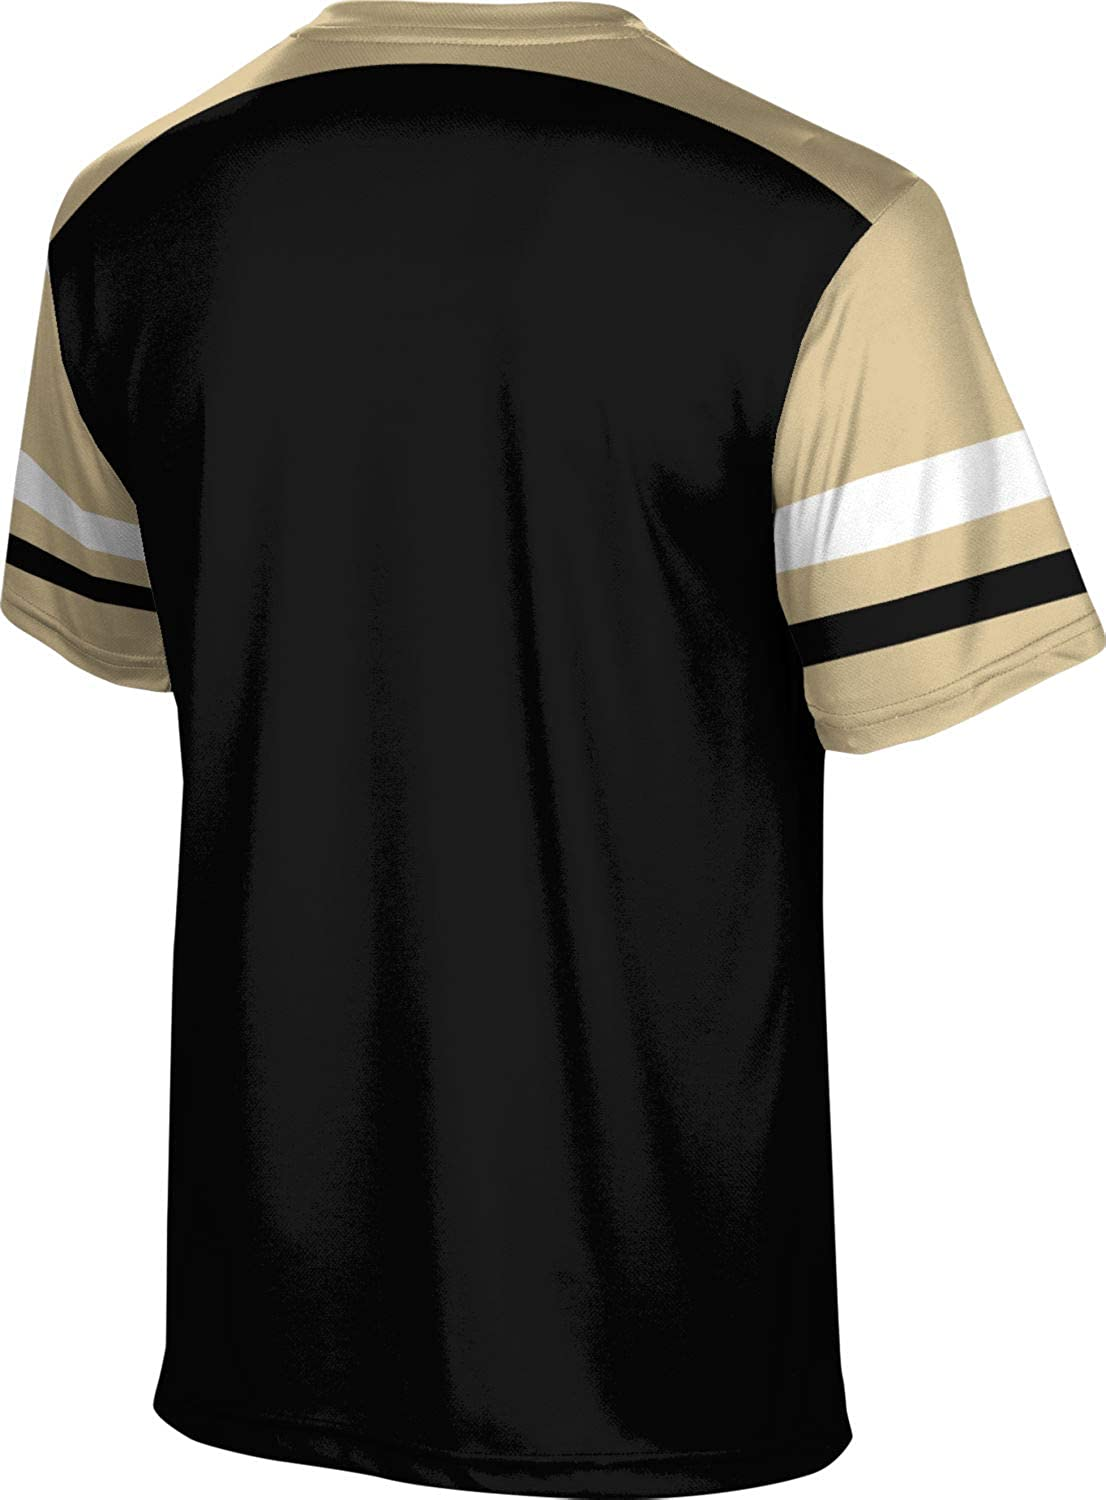 Old School ProSphere Purdue University Basketball Boys Performance T-Shirt